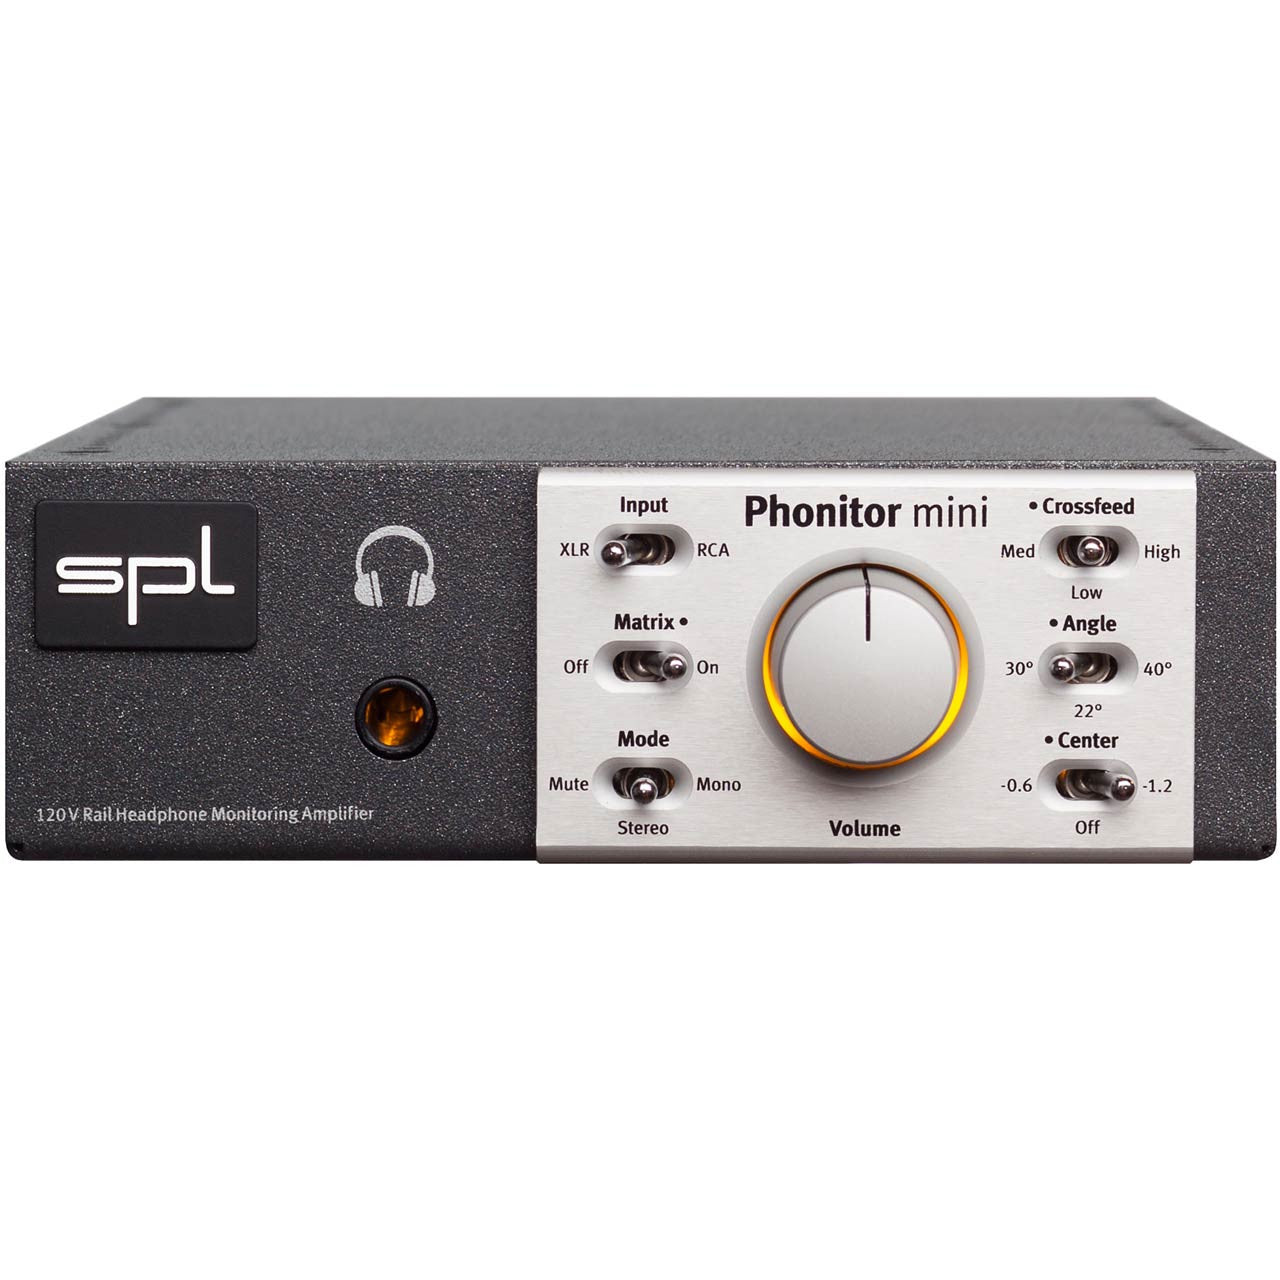 image of SPL Phonitor mini Headphone Monitoring Amplifier front panel